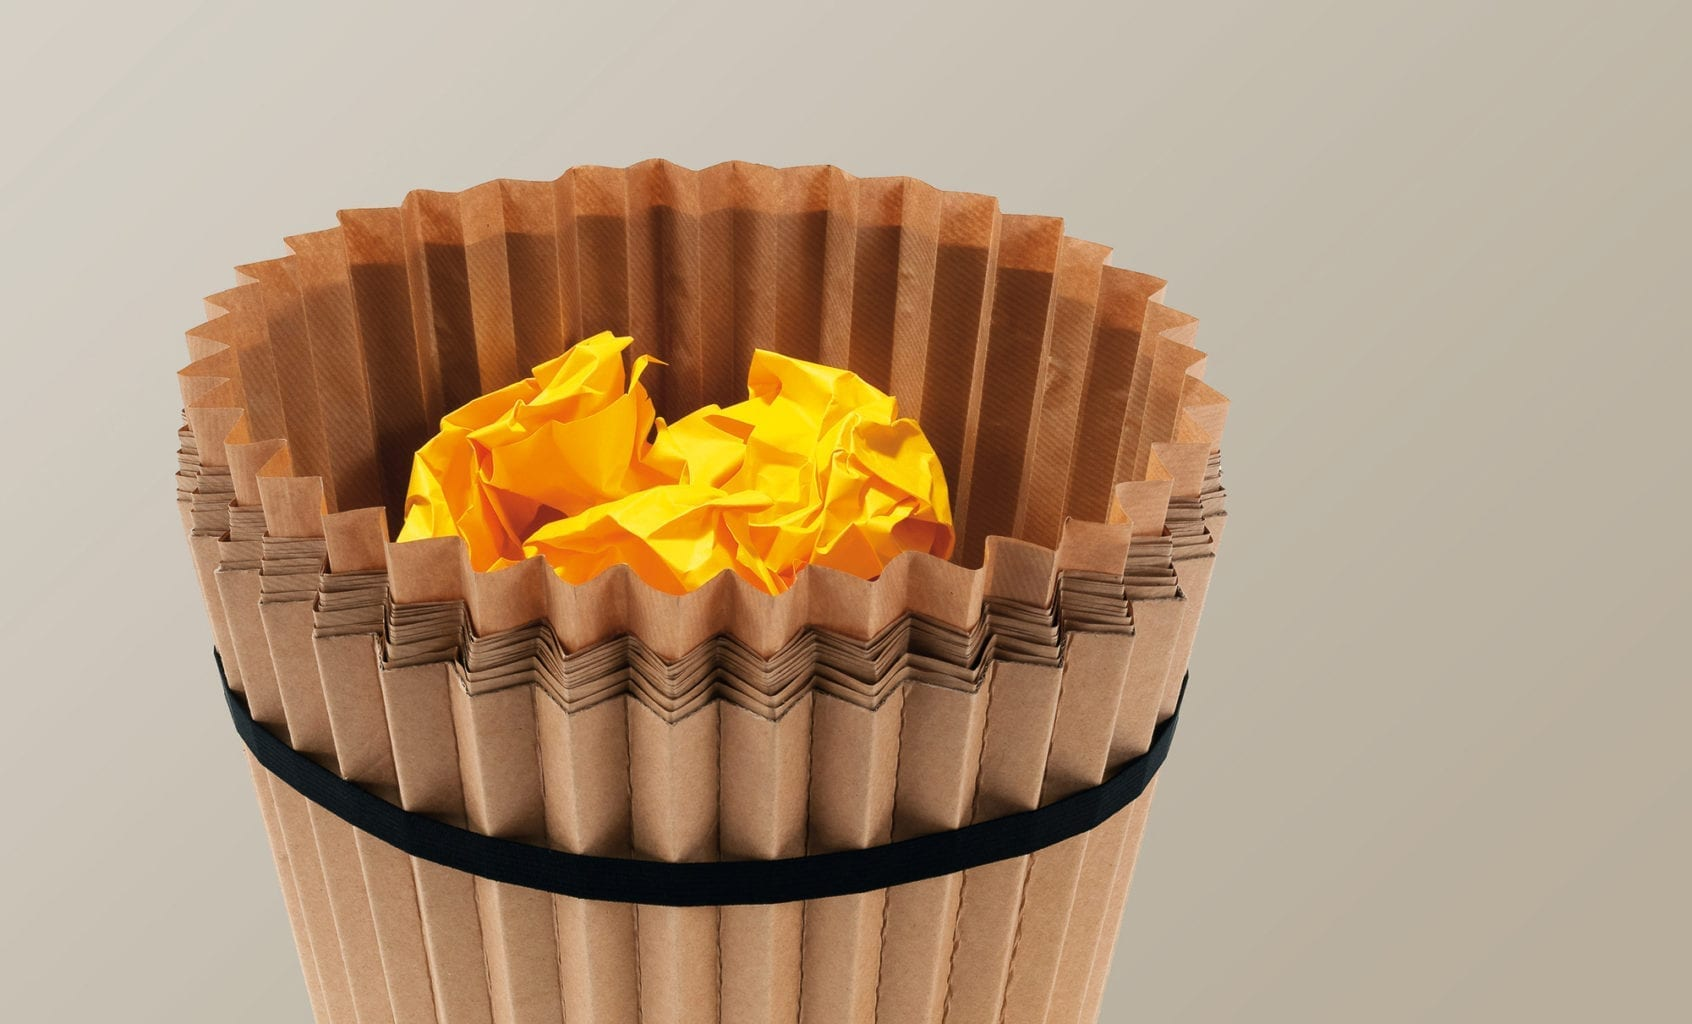 Fabriano Waste Paper Bin product design 02